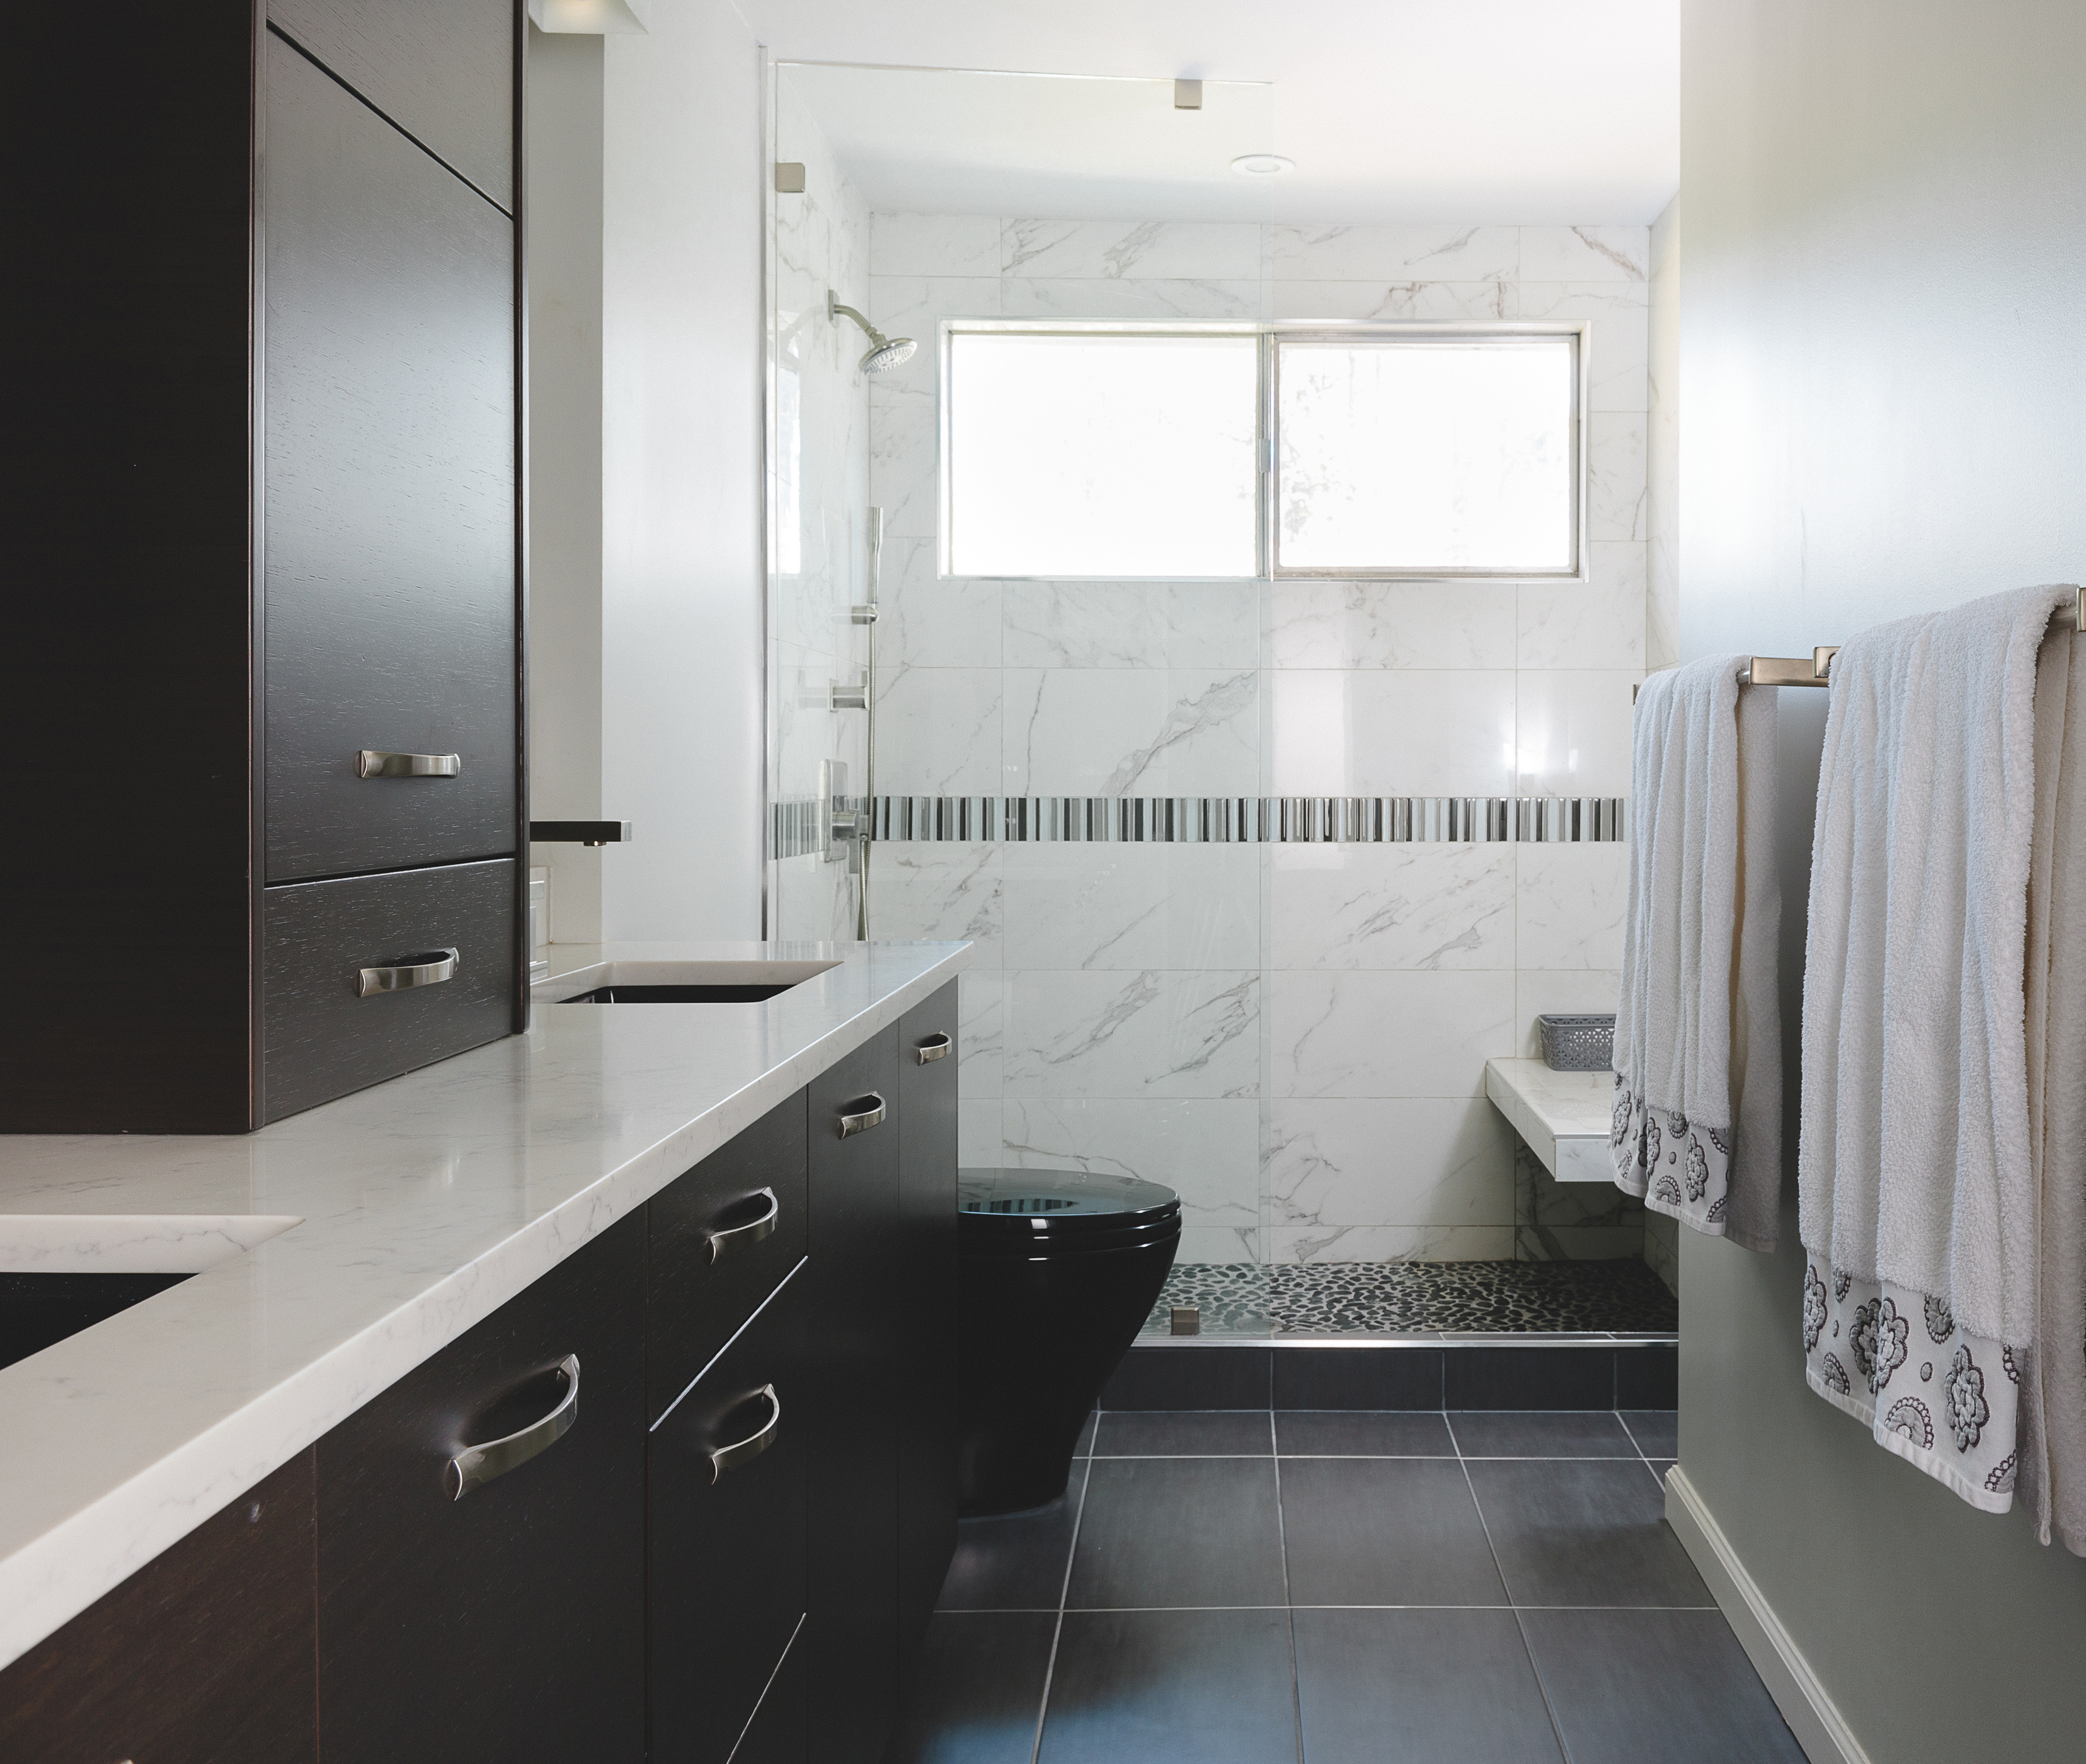 Reed Discusses Atlanta Aging-in-Place   MOSAIC Design + Build on aging in place bathrooms, southwest airlines bathrooms, wal-mart bathrooms, corporate bathrooms, sears bathrooms, google bathrooms, home depot bathrooms, marriott bathrooms,